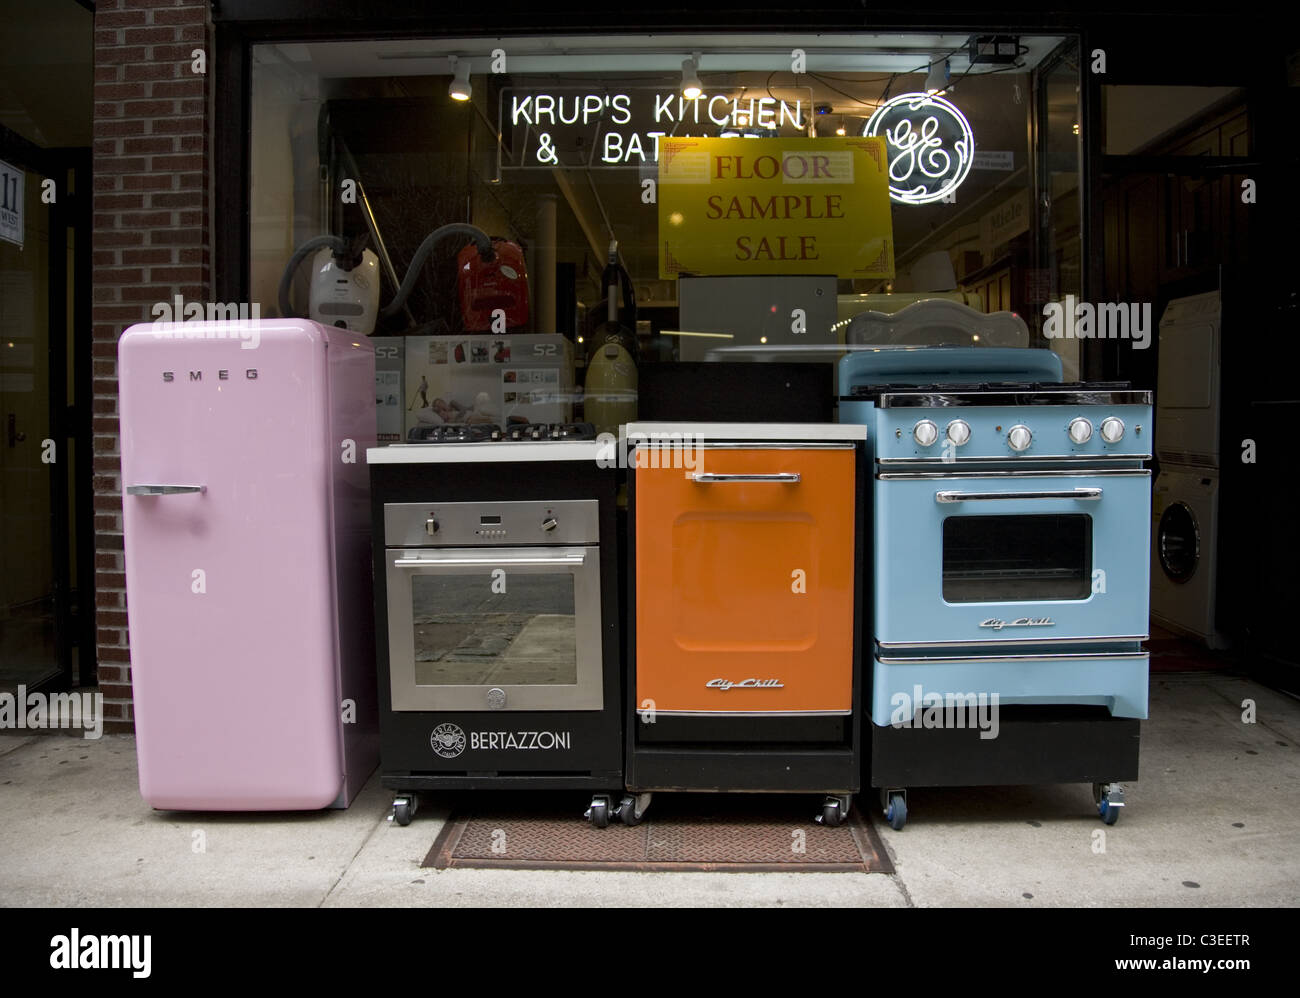 New Retro Style Kitchen Appliances On Display In New York City.